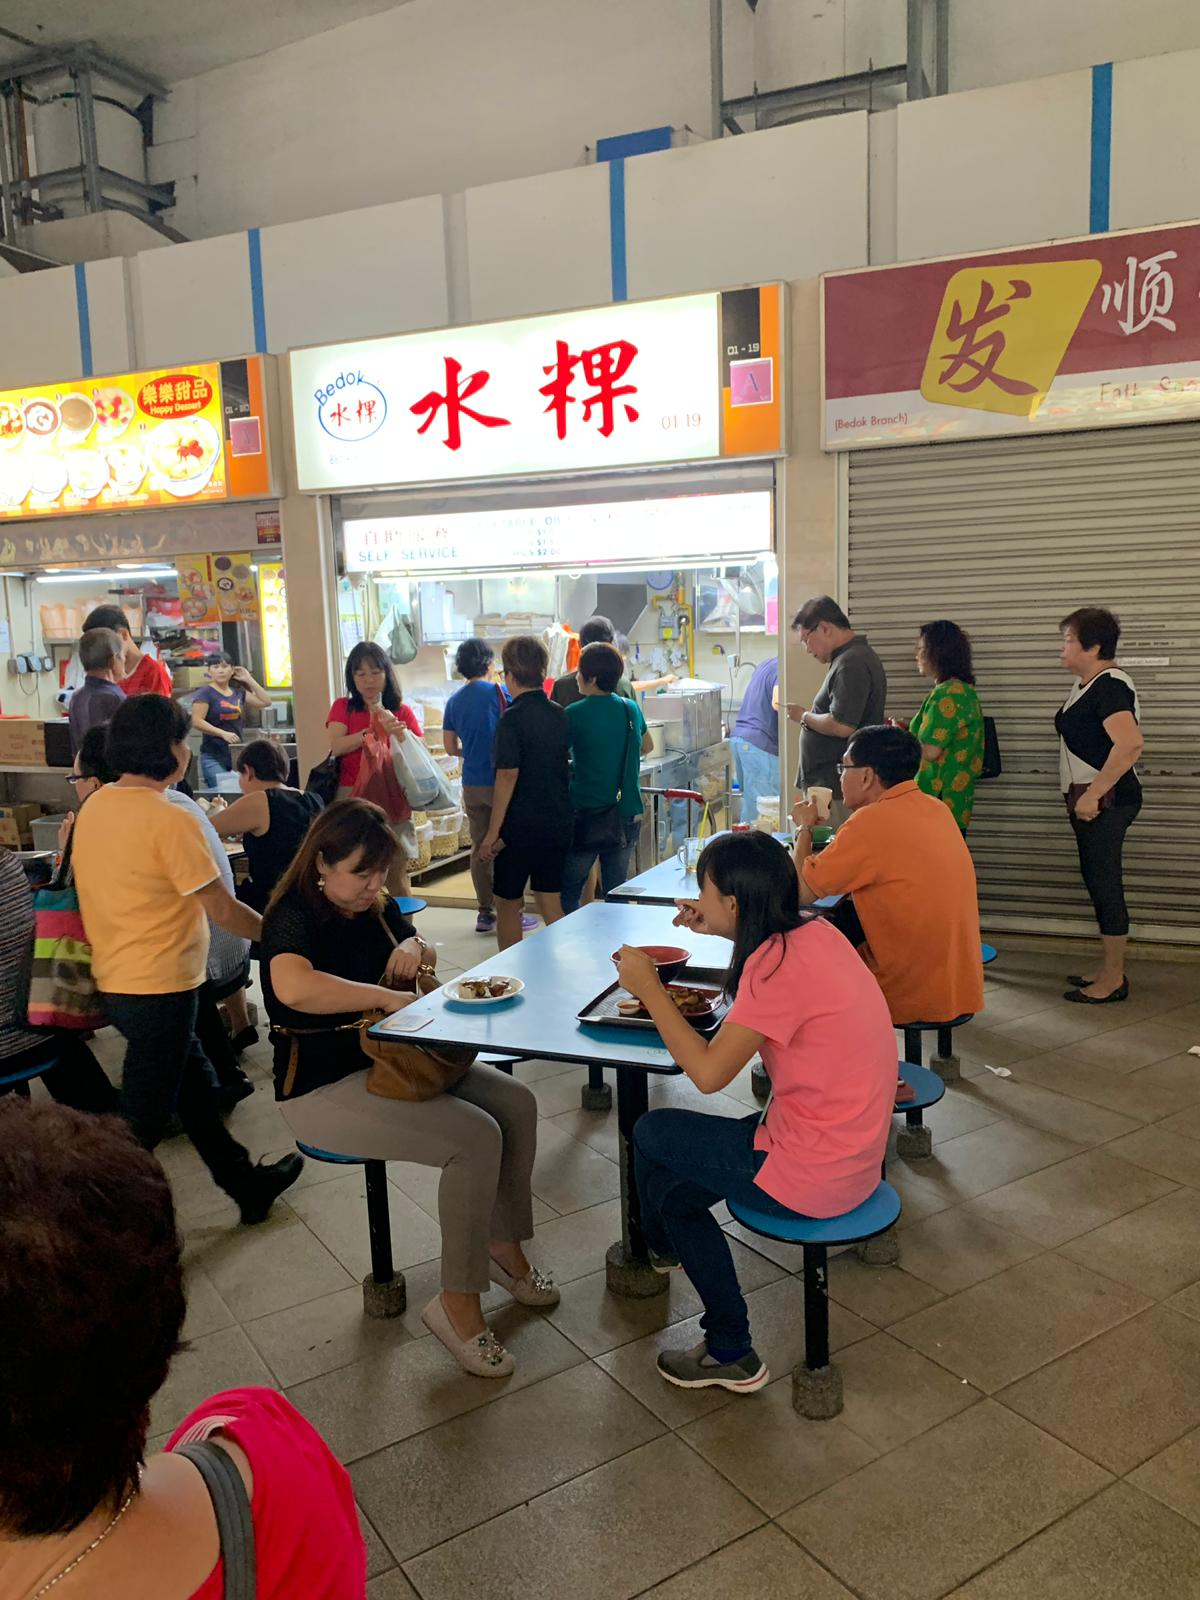 Chwee Keuh Stall at Bedok Interchange with a queue in front of it